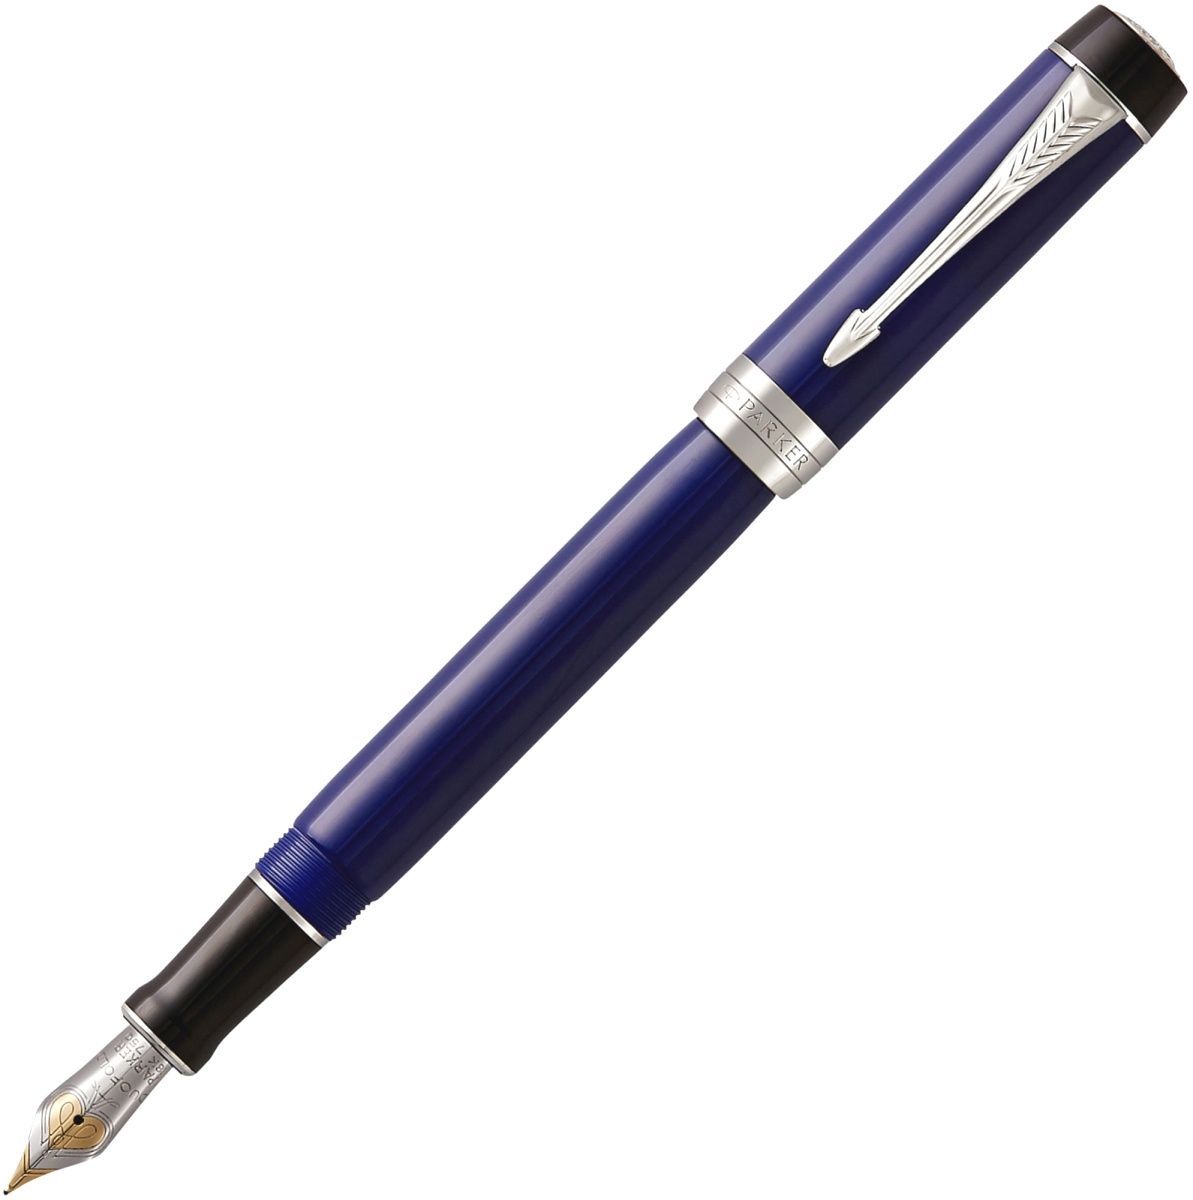 Перьевая ручка Parker Duofold Classic Centennial F77, Blue and Black CT (Перо F)